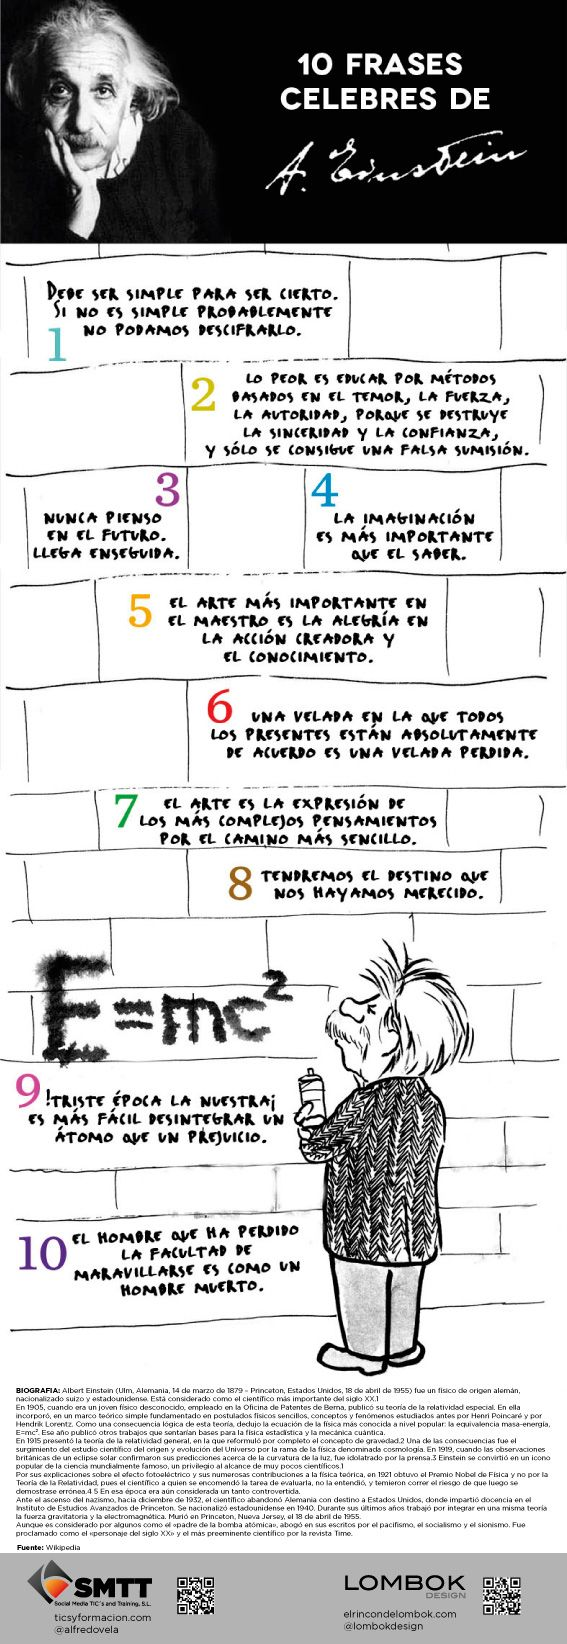 #Spanish quotes #citas #frases celebres #Quotes in Spanish - 10 frases célebres de Einstein #infografia #infographic